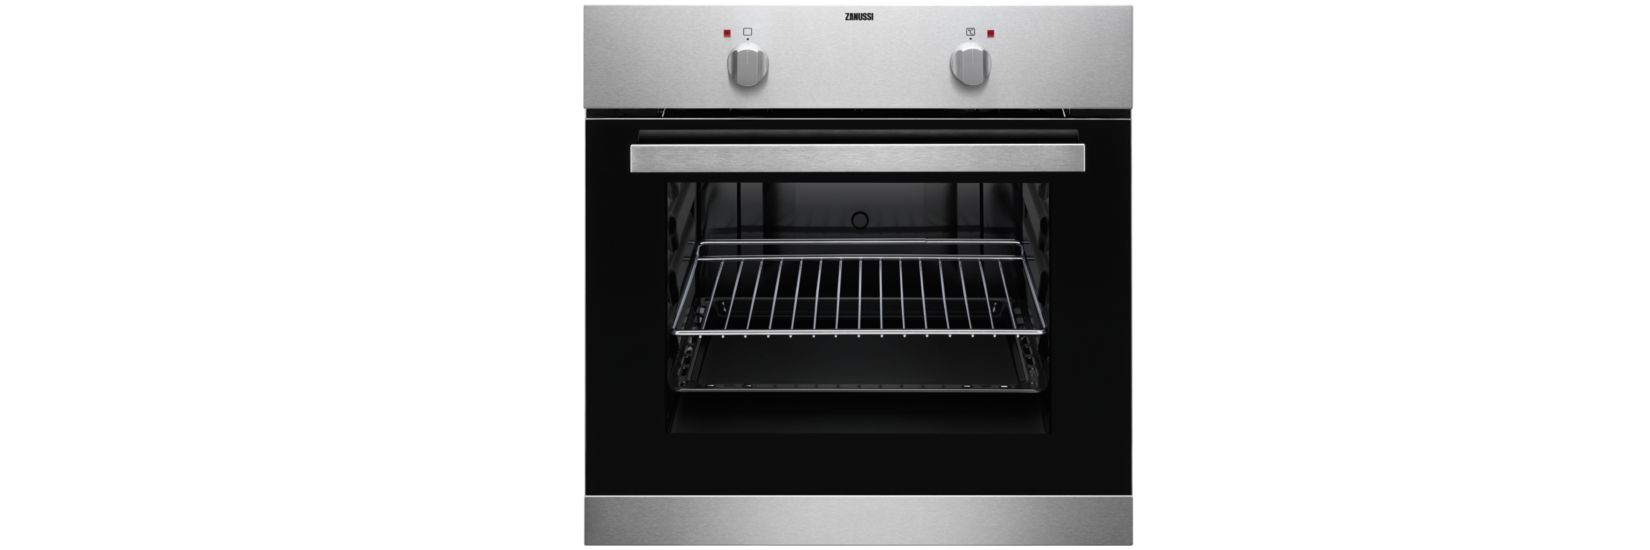 Zanussi Conventional Single Oven With Gril